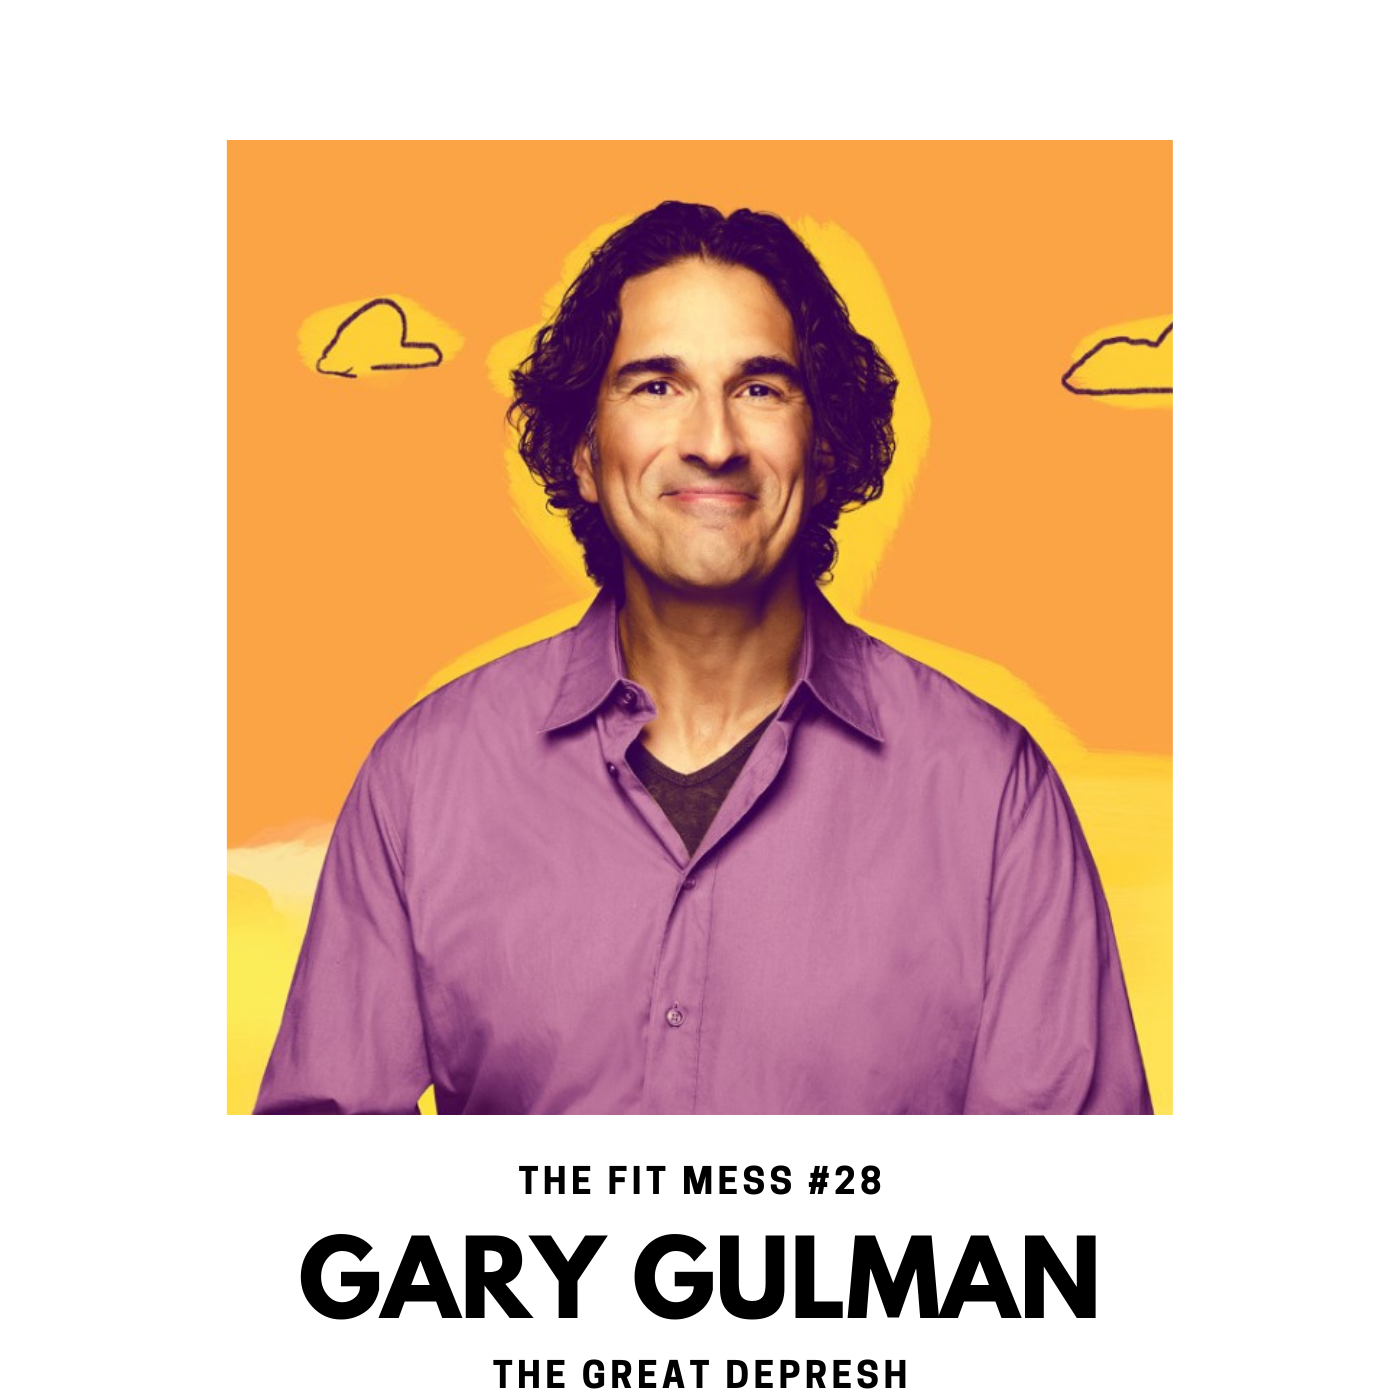 The Great Depresh with Gary Gulman